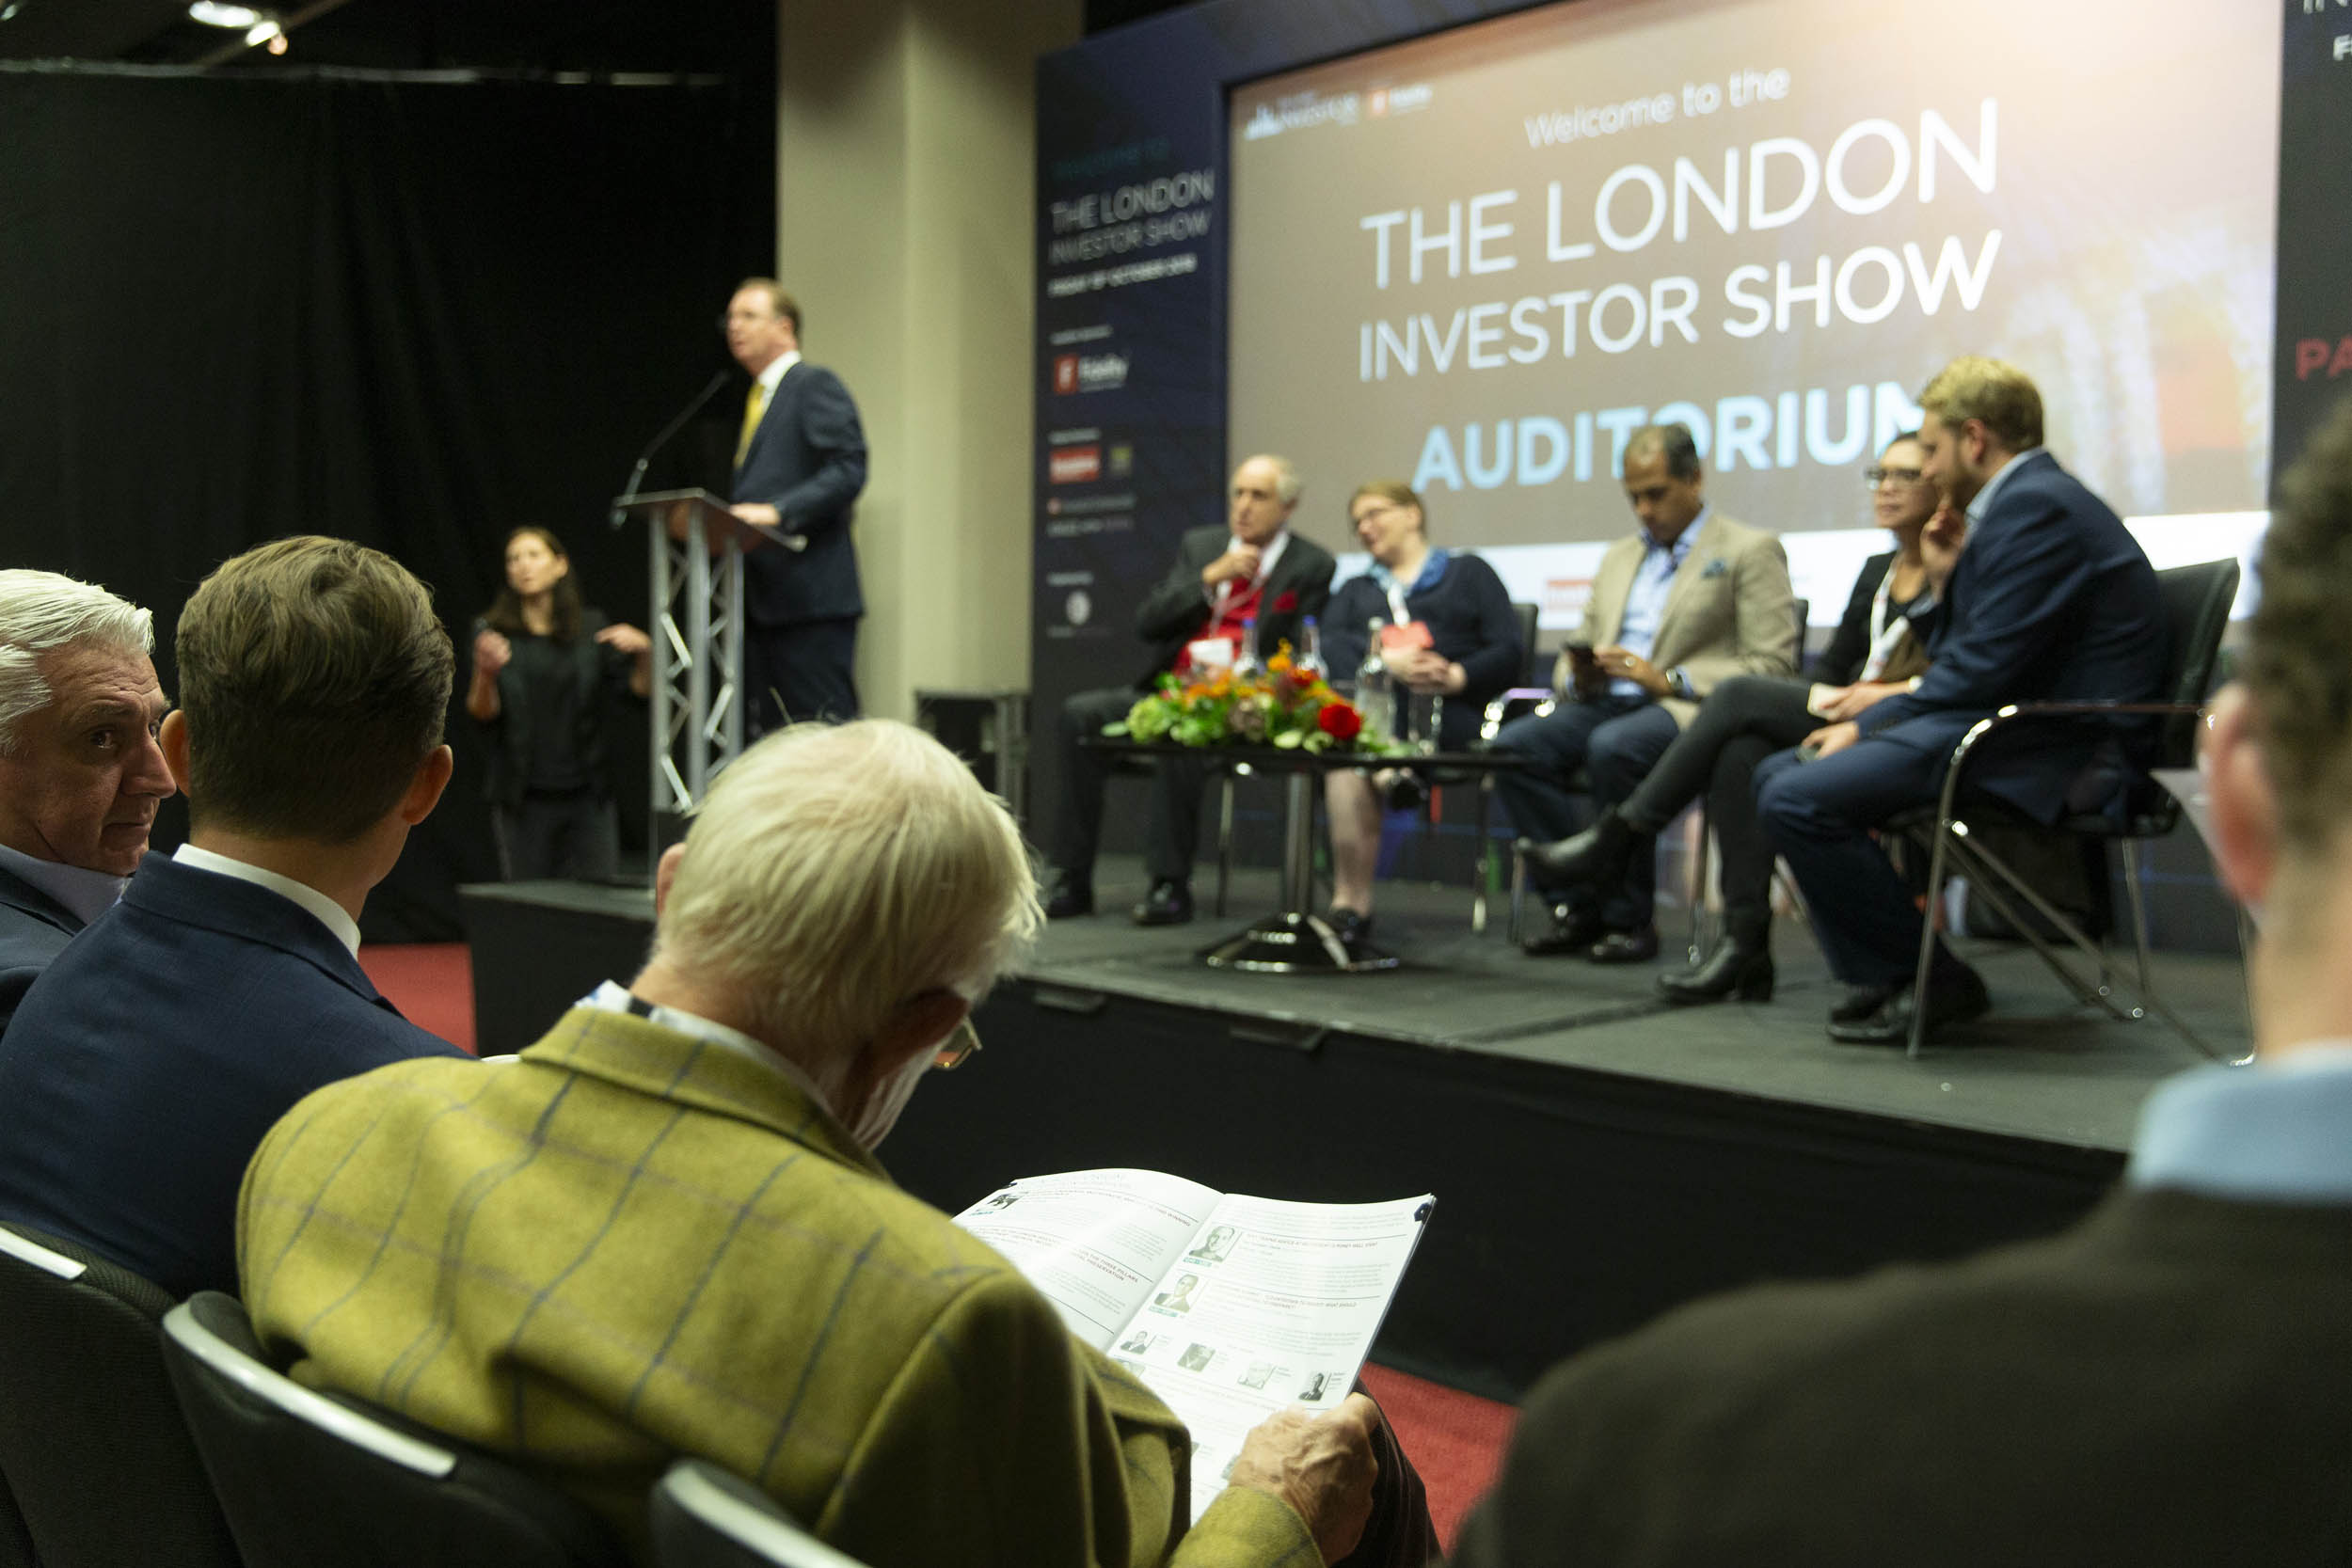 London Investor Show and Introduction to Plastic Green Power